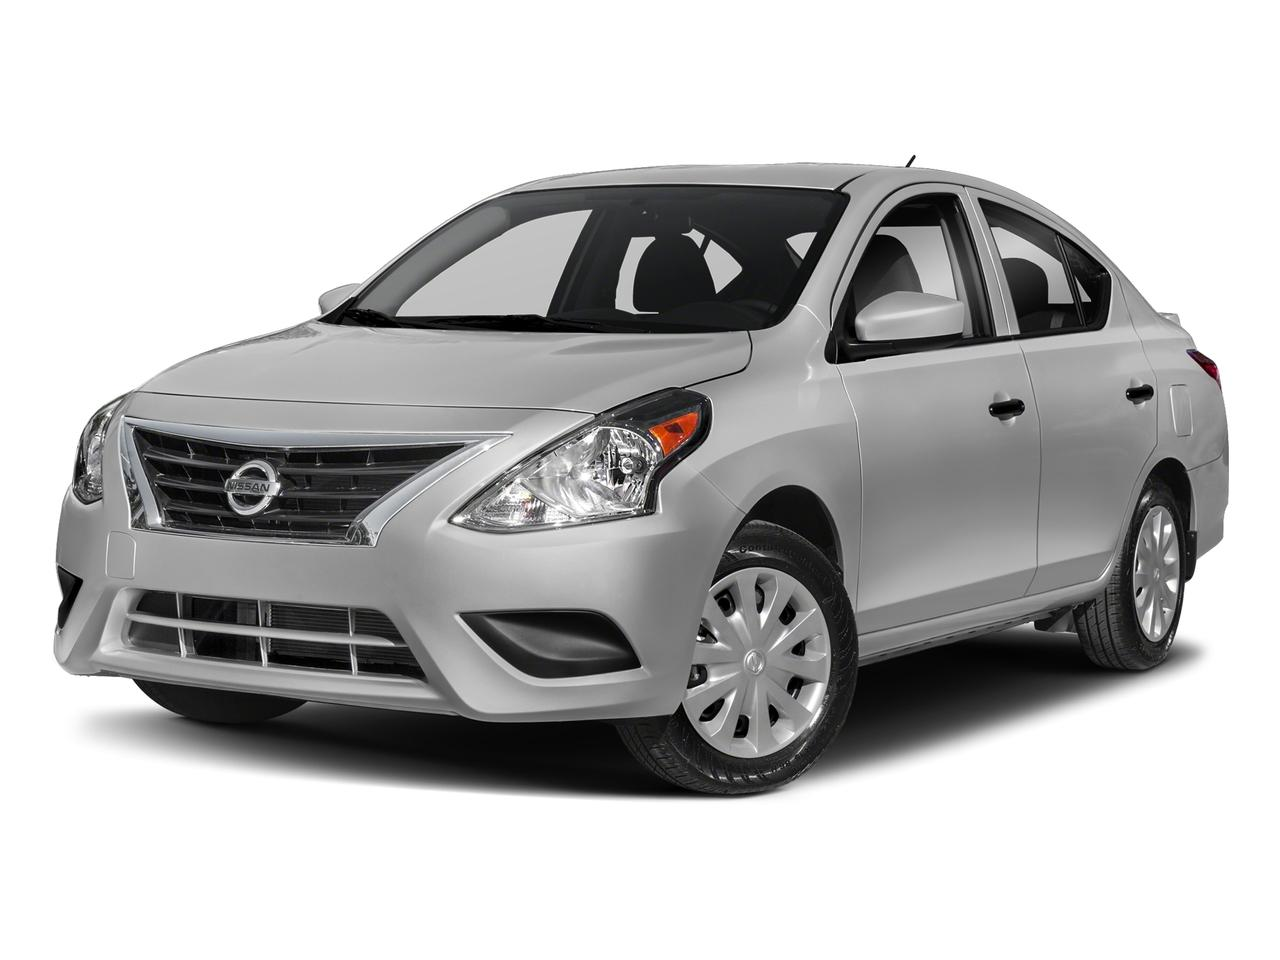 2018 Nissan Versa Sedan Vehicle Photo in Safford, AZ 85546